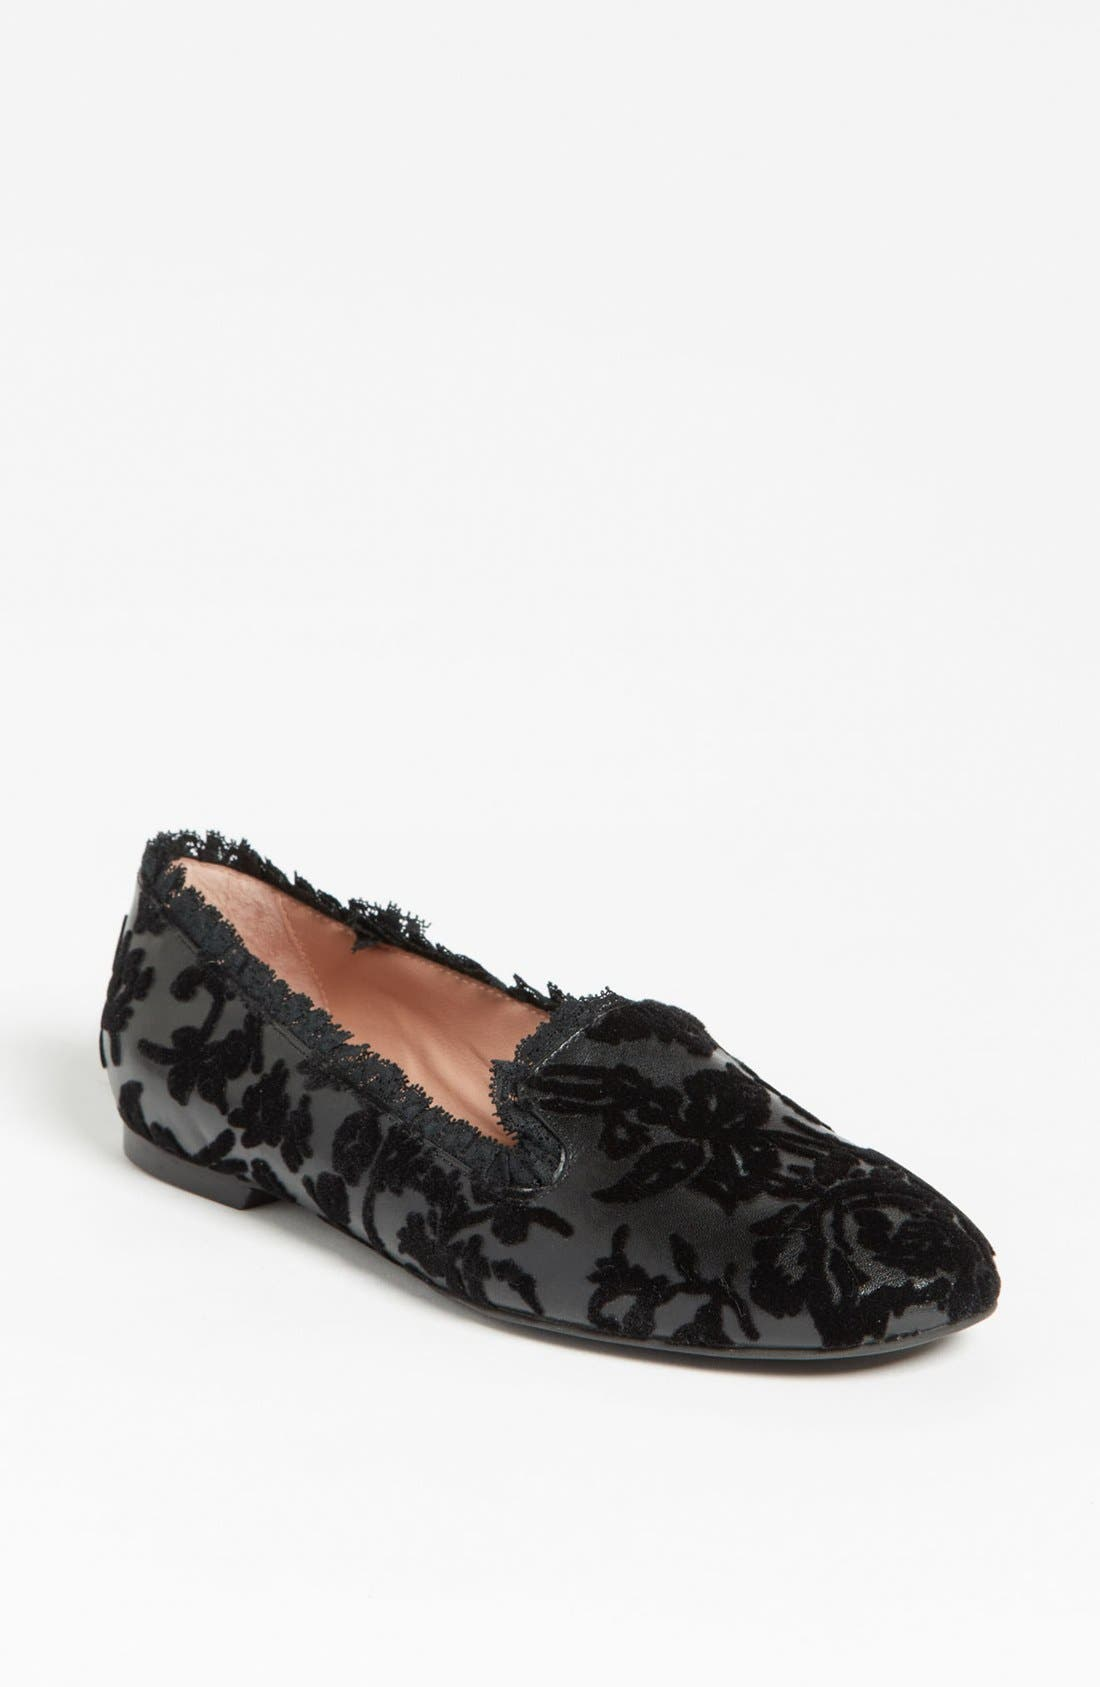 Alternate Image 1 Selected - RED Valentino Smoking Loafer